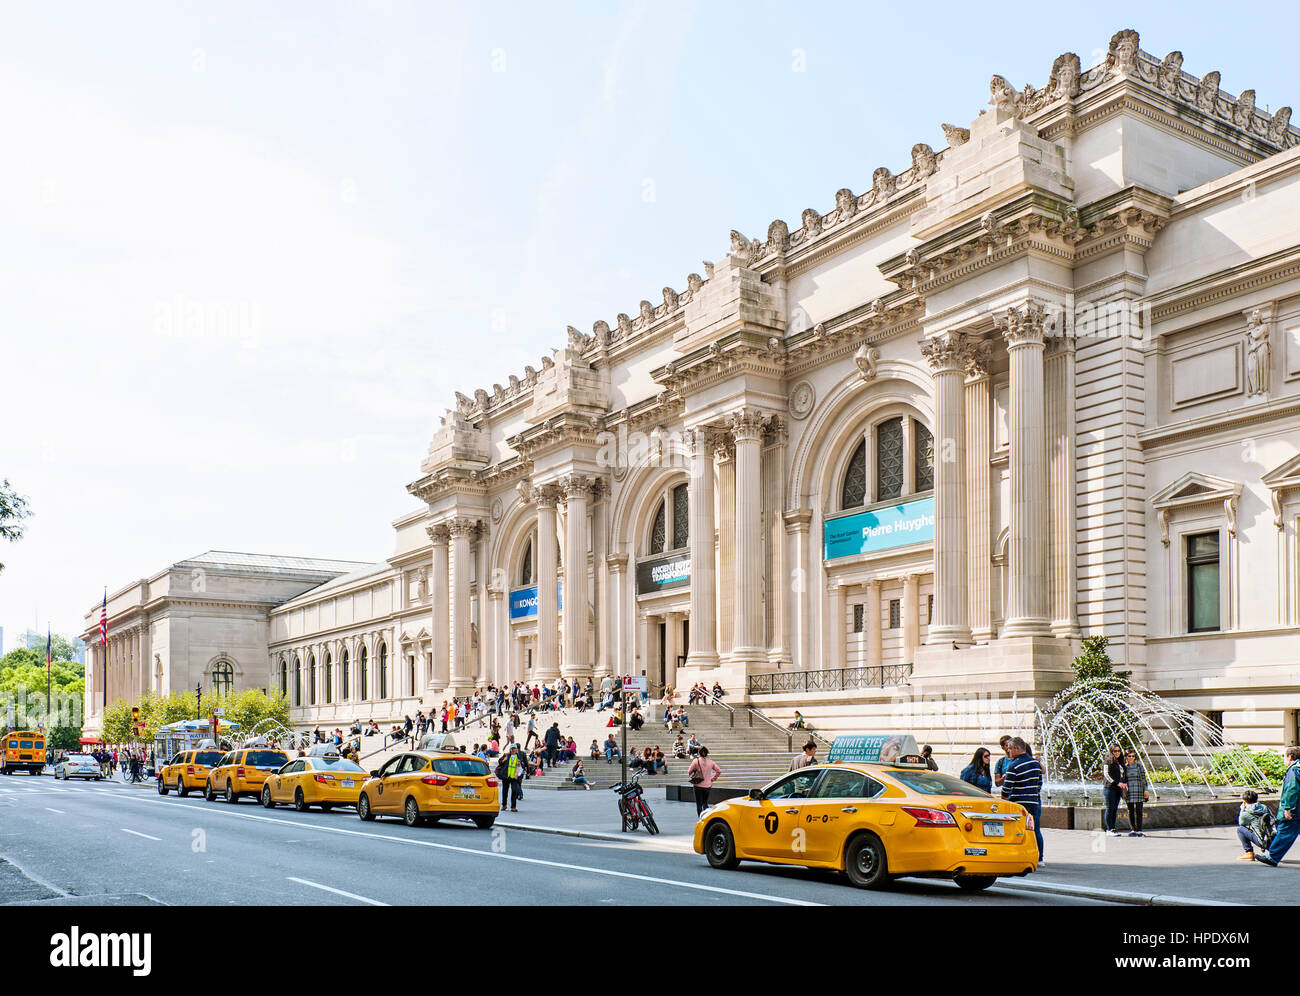 The Metropolitan Museum of Art, the Met Museum Exterior, Fifth Avenue, New York City - Stock Image